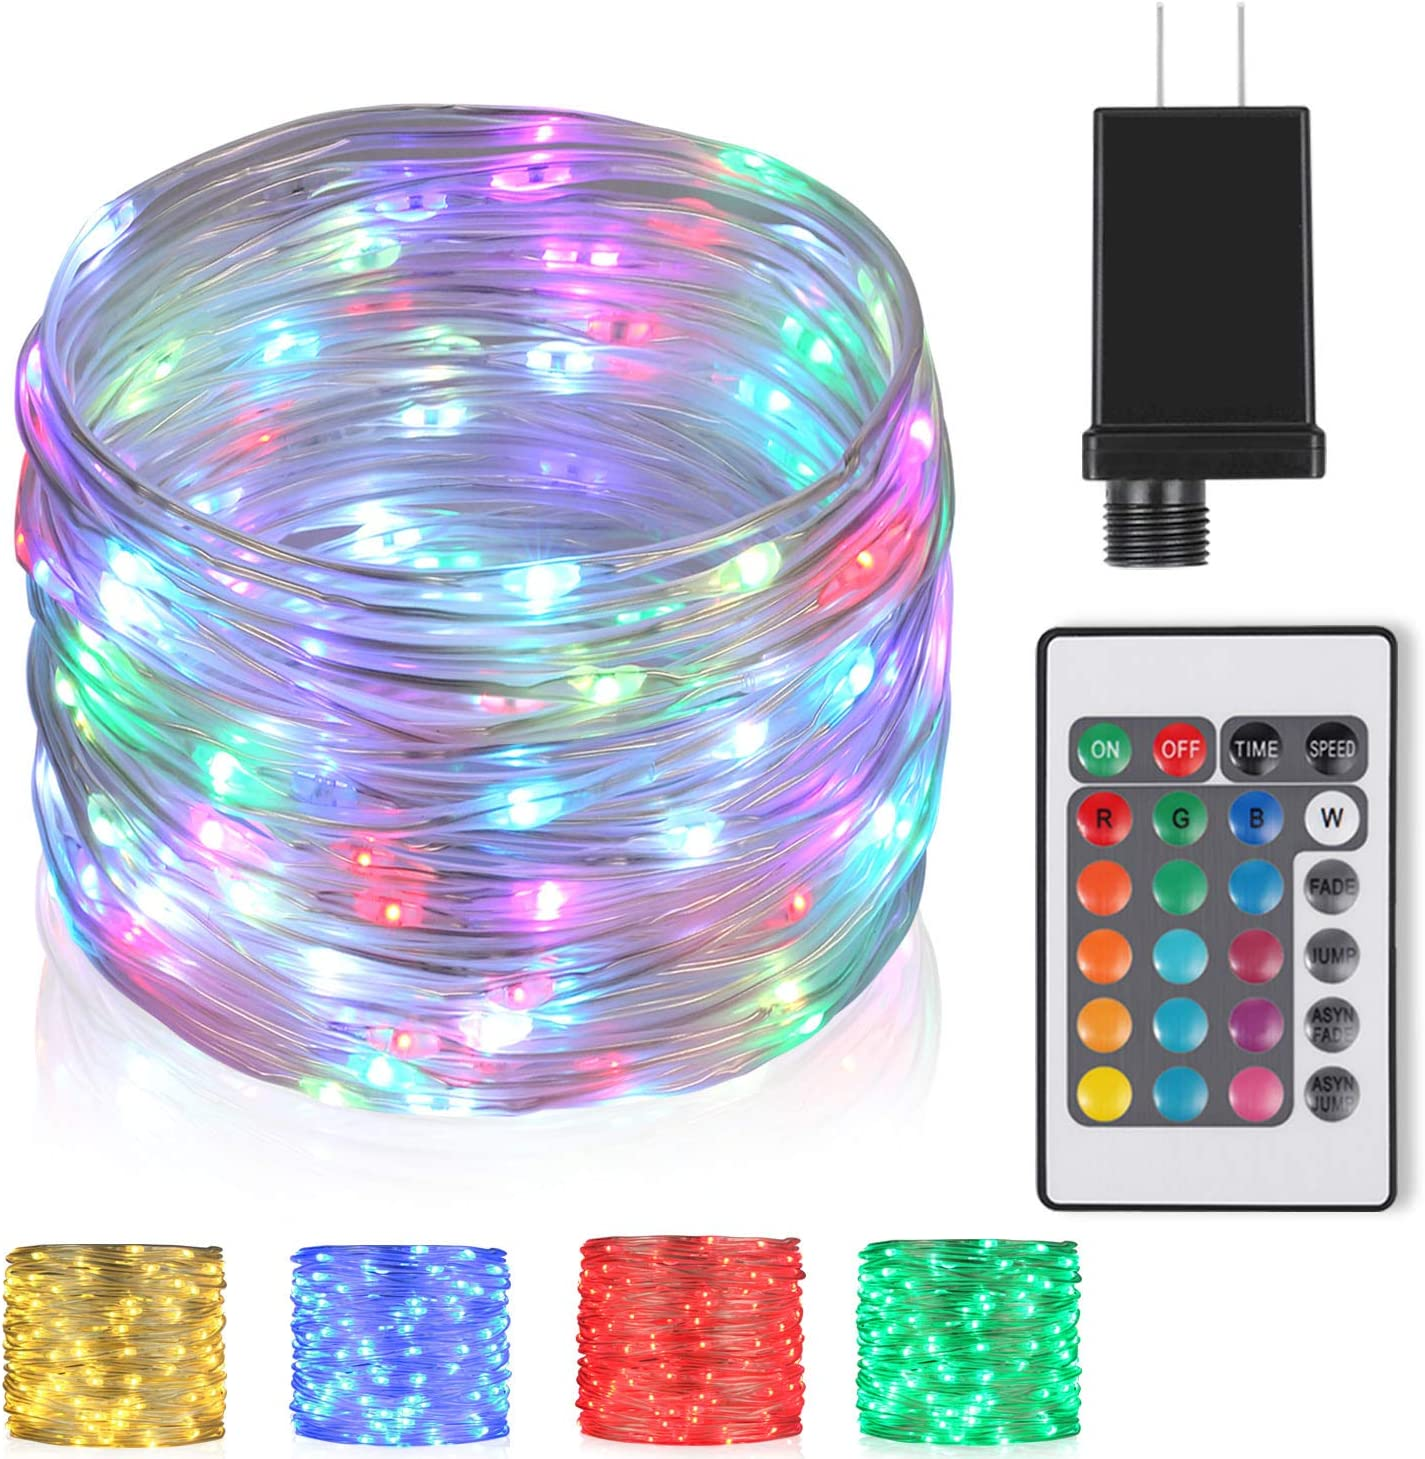 ✅10-100M LED Mains Plug In String Fairy Light Garden Xmas Tree Outdoor CE /& RoHS